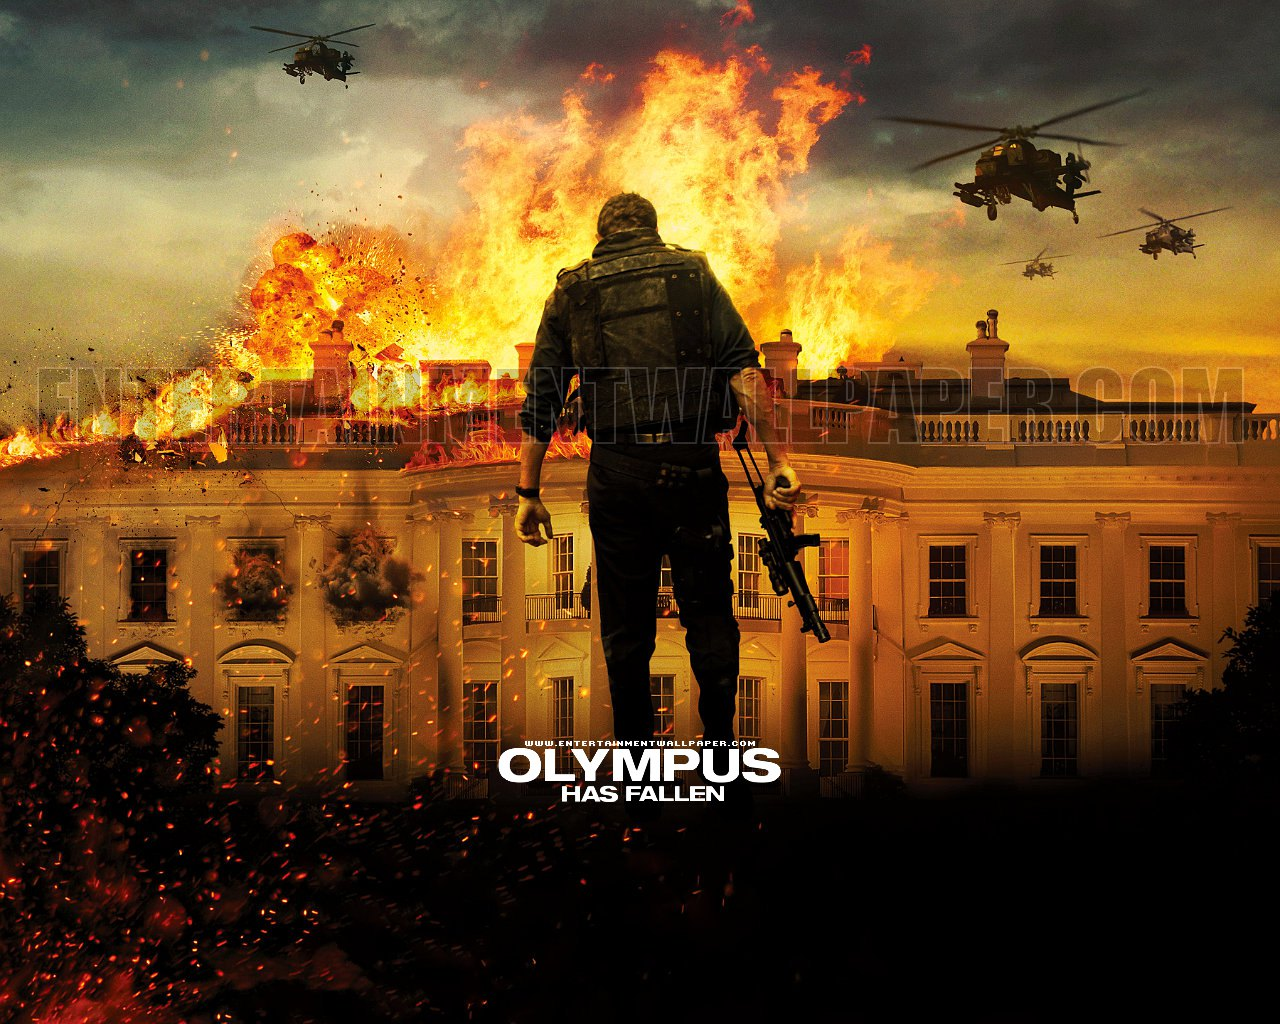 olympus has fallen wallpaper 10038303 size 1280x1024 more olympus has 1280x1024